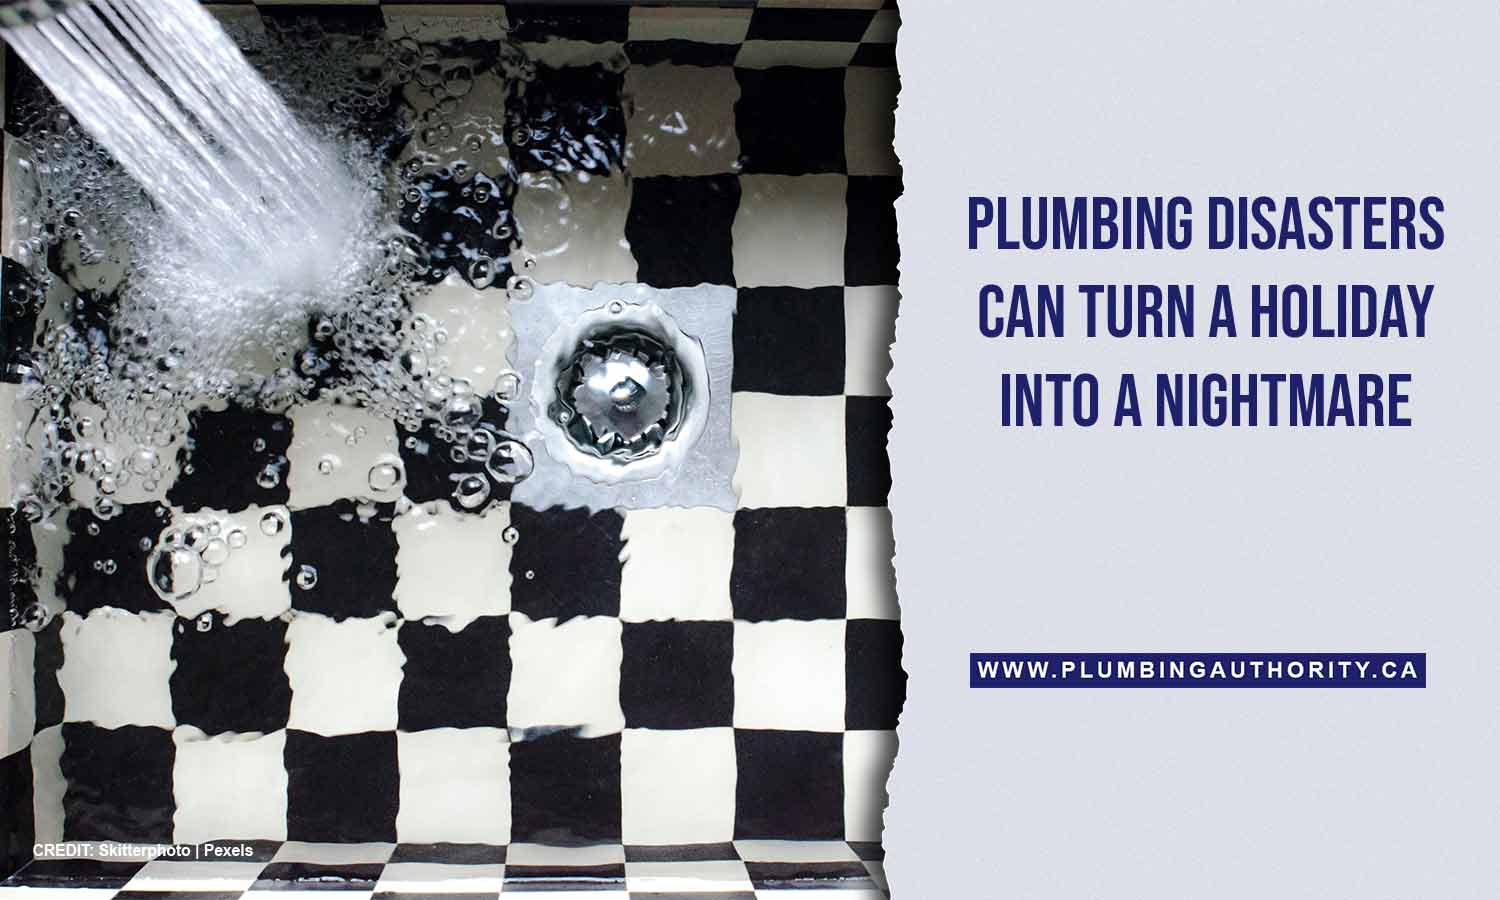 Plumbing disasters can turn a holiday into a nightmare